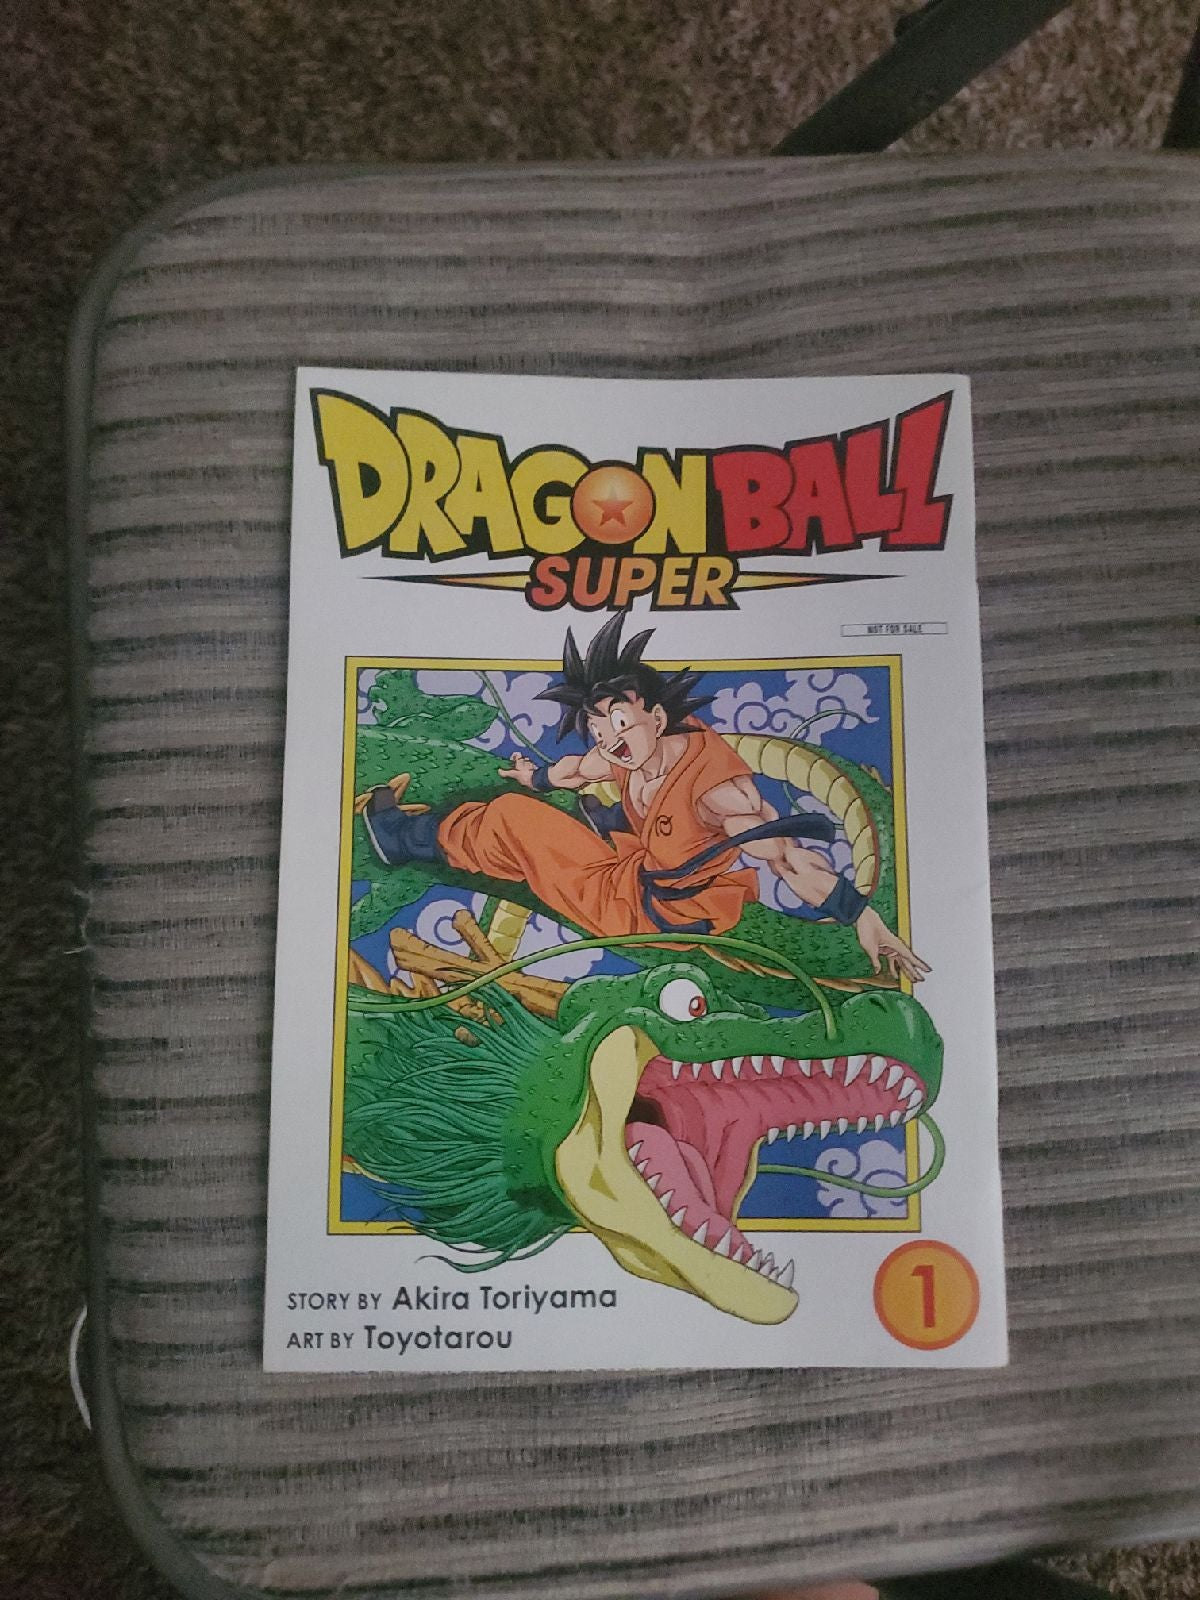 Two volumes in one dragon ball!